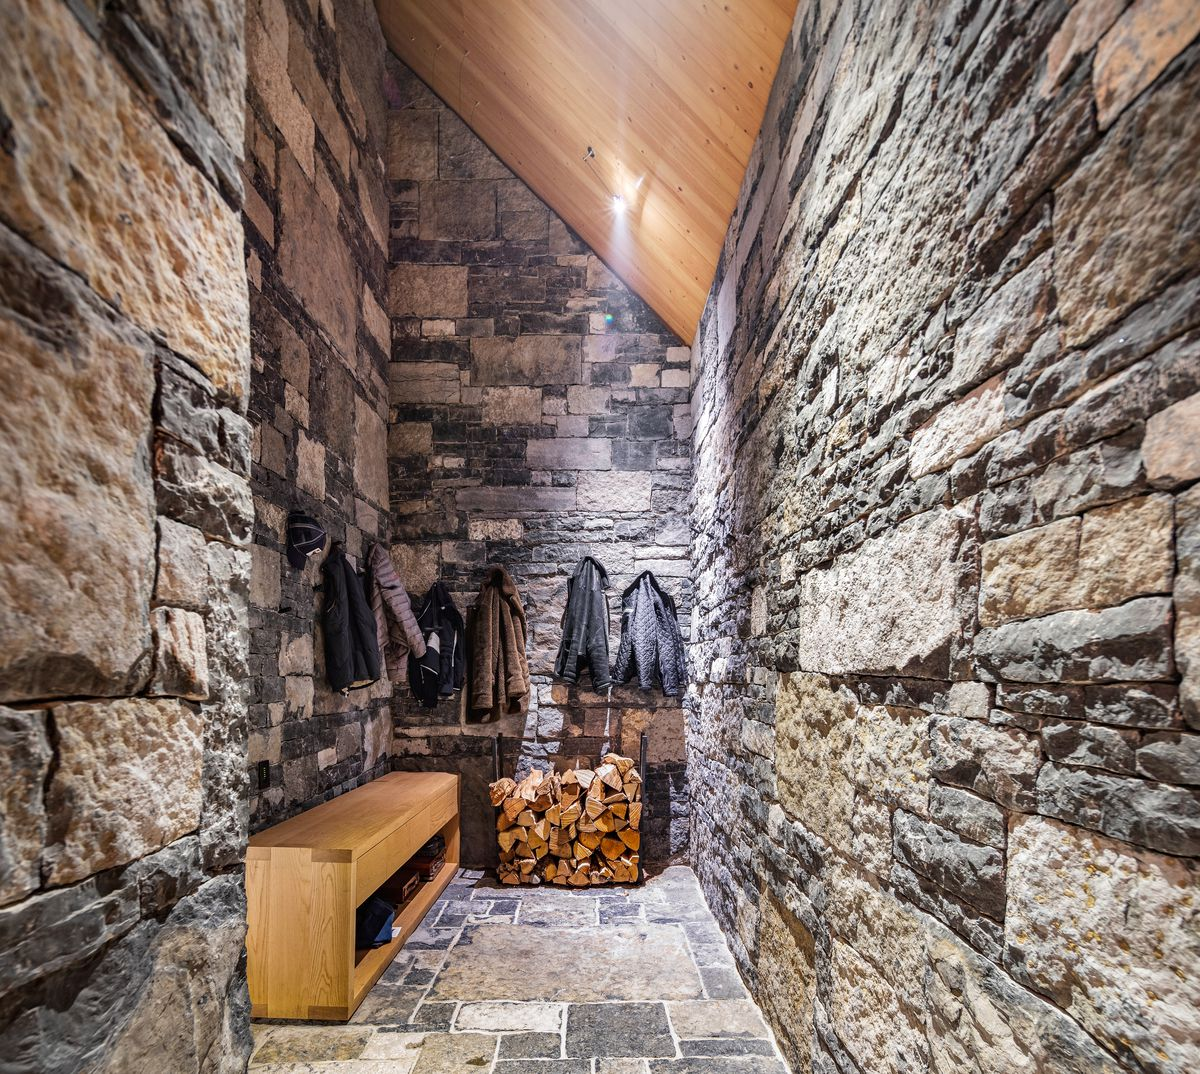 A stone mud room has stone on the walls, a wooden bench, and jackets on the wall.